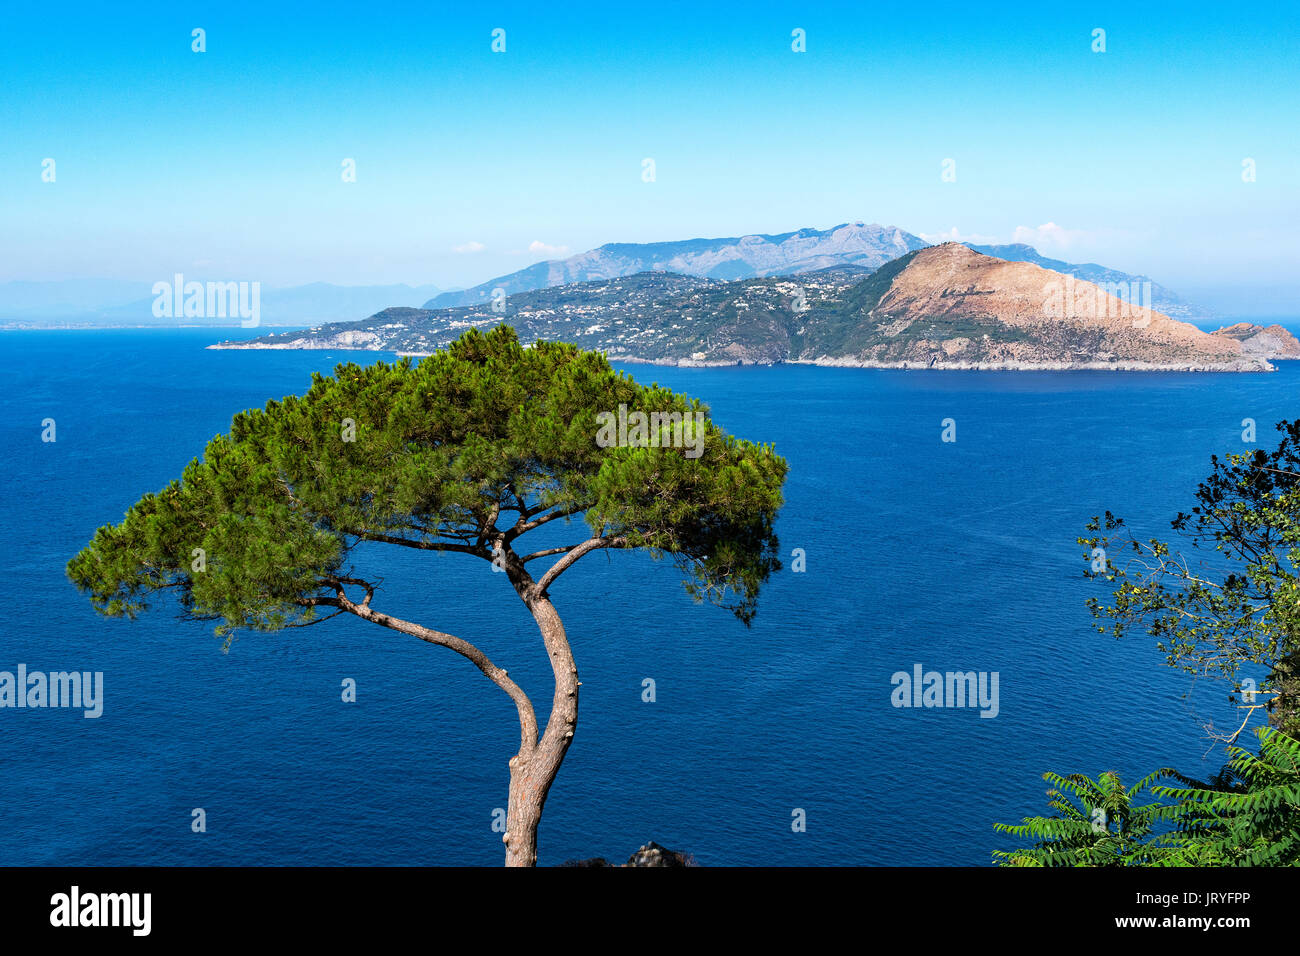 a view of the sorrento peninsular on the mainland of southern italt from the island of capri in the gulf of naples, italy - Stock Image